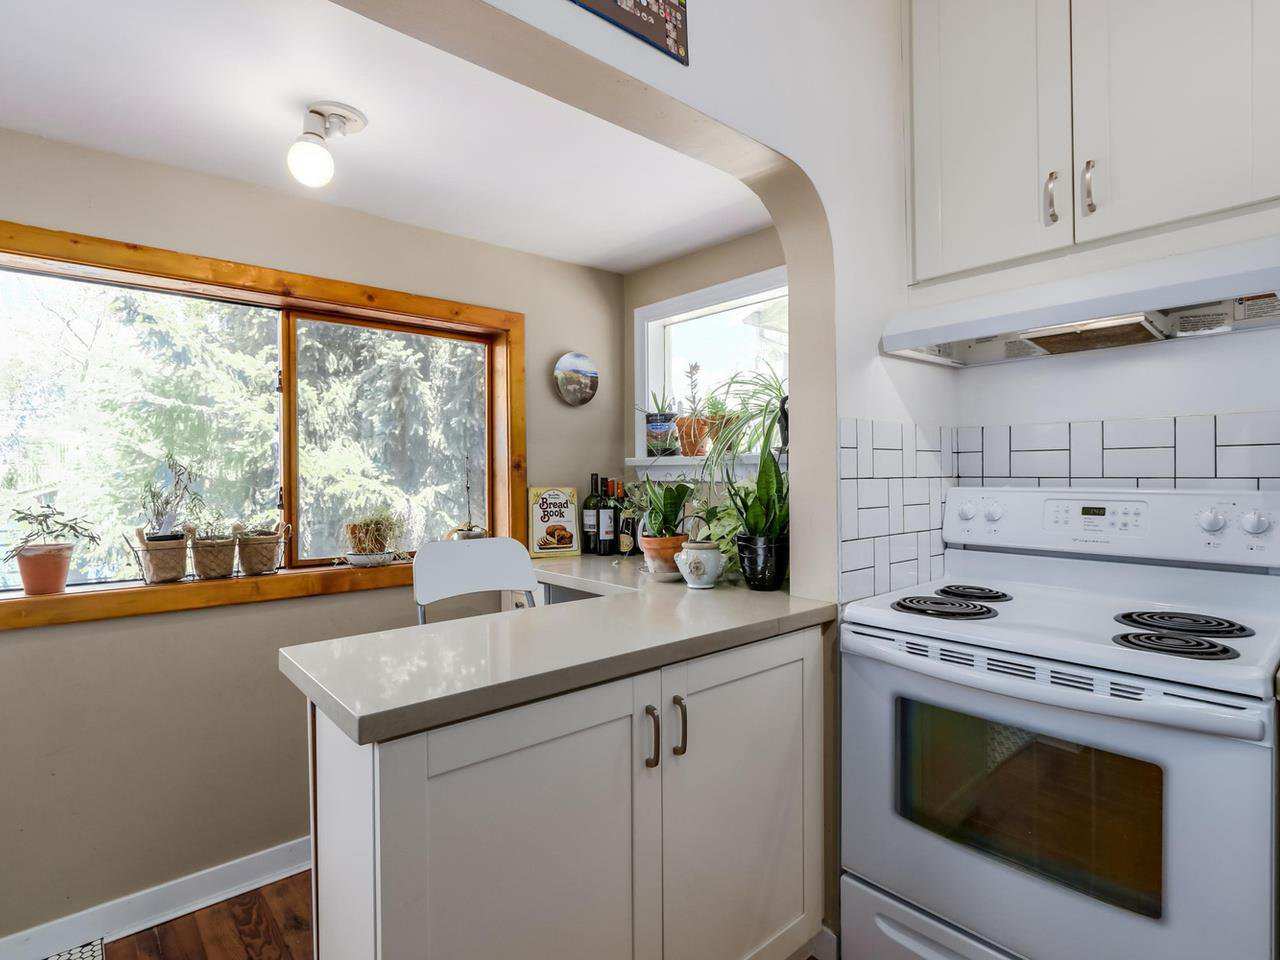 """Photo 8: Photos: 835 E 19TH Avenue in Vancouver: Fraser VE House for sale in """"CEDAR COTTAGE"""" (Vancouver East)  : MLS®# R2071745"""